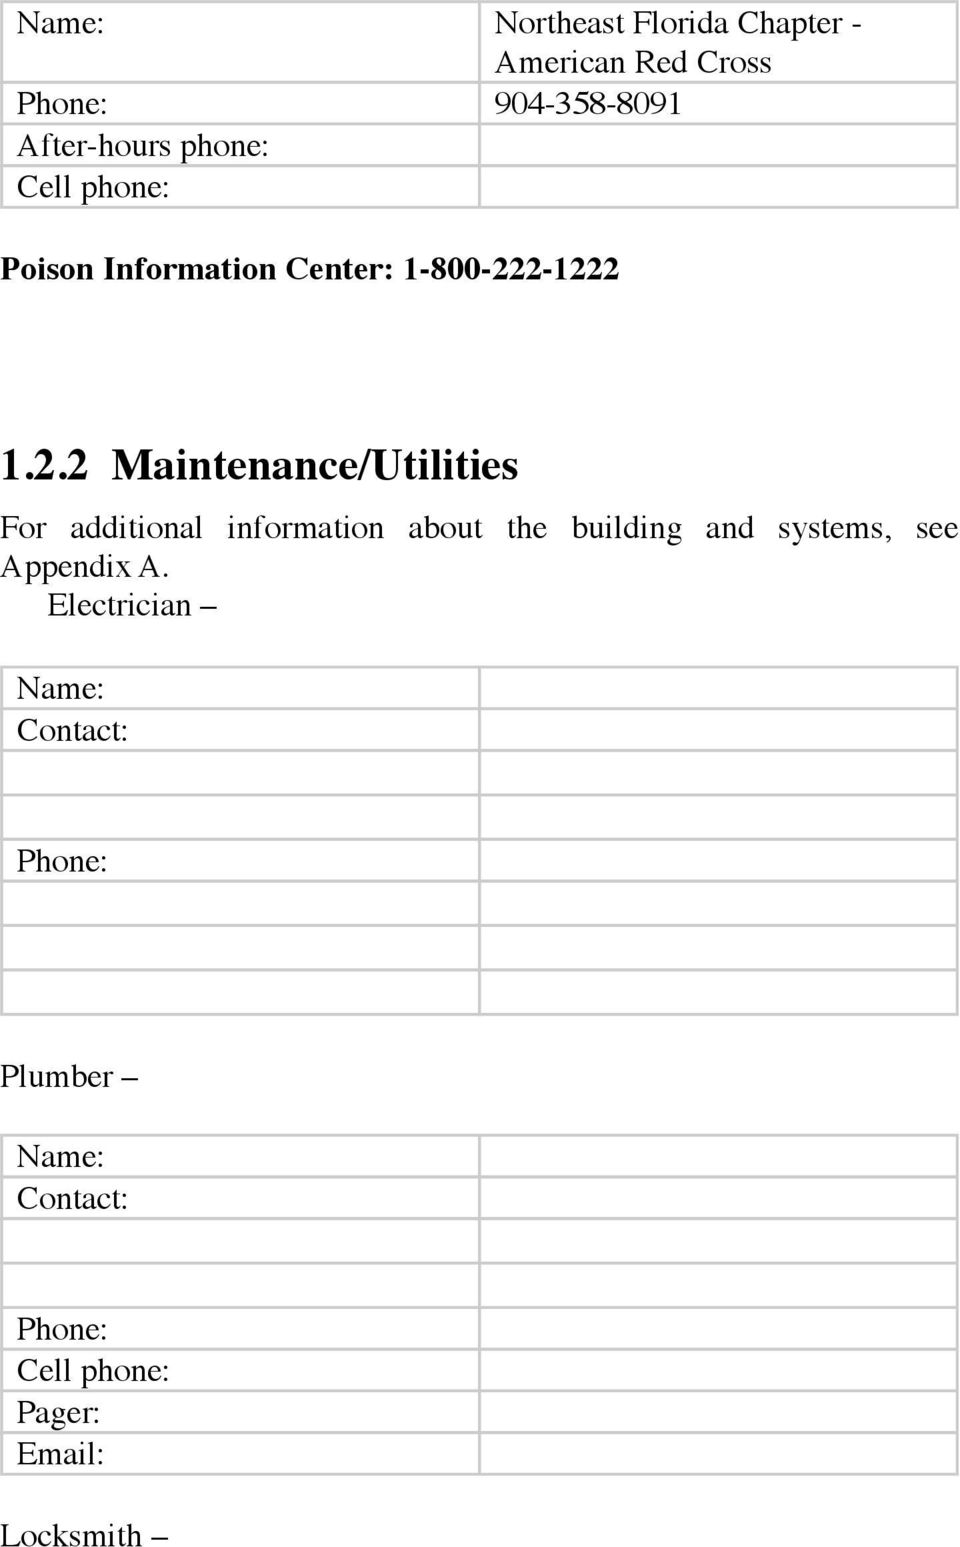 2-1222 1.2.2 Maintenance/Utilities For additional information about the building and